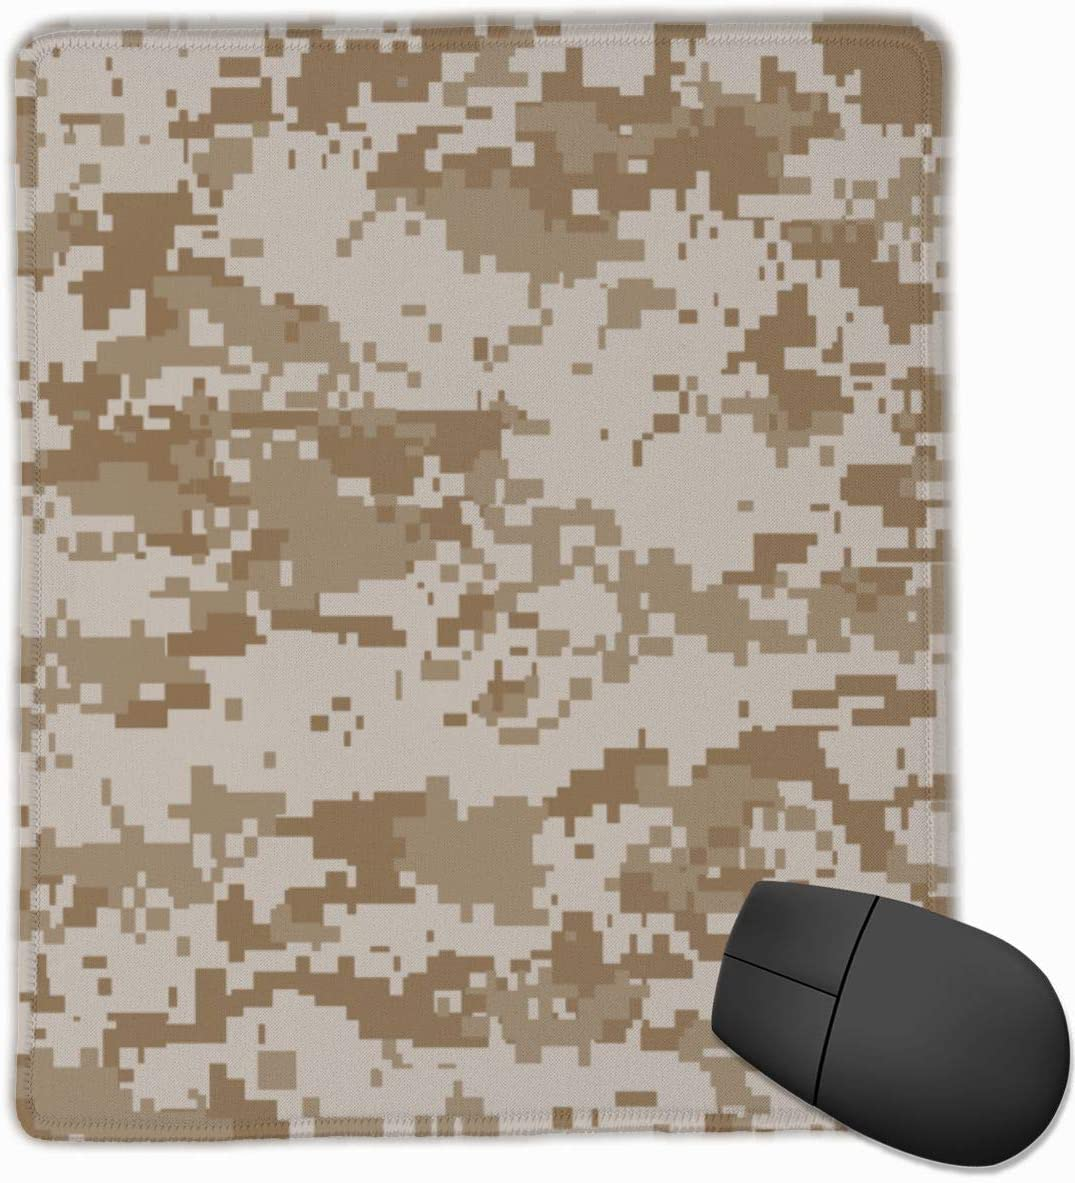 Digital Desert Camo Mouse Mat Cute Mouse Pad Rubber Base Mousepad with Stitched Edge Waterproof Office Mouse Pad 7X8.6 Inch